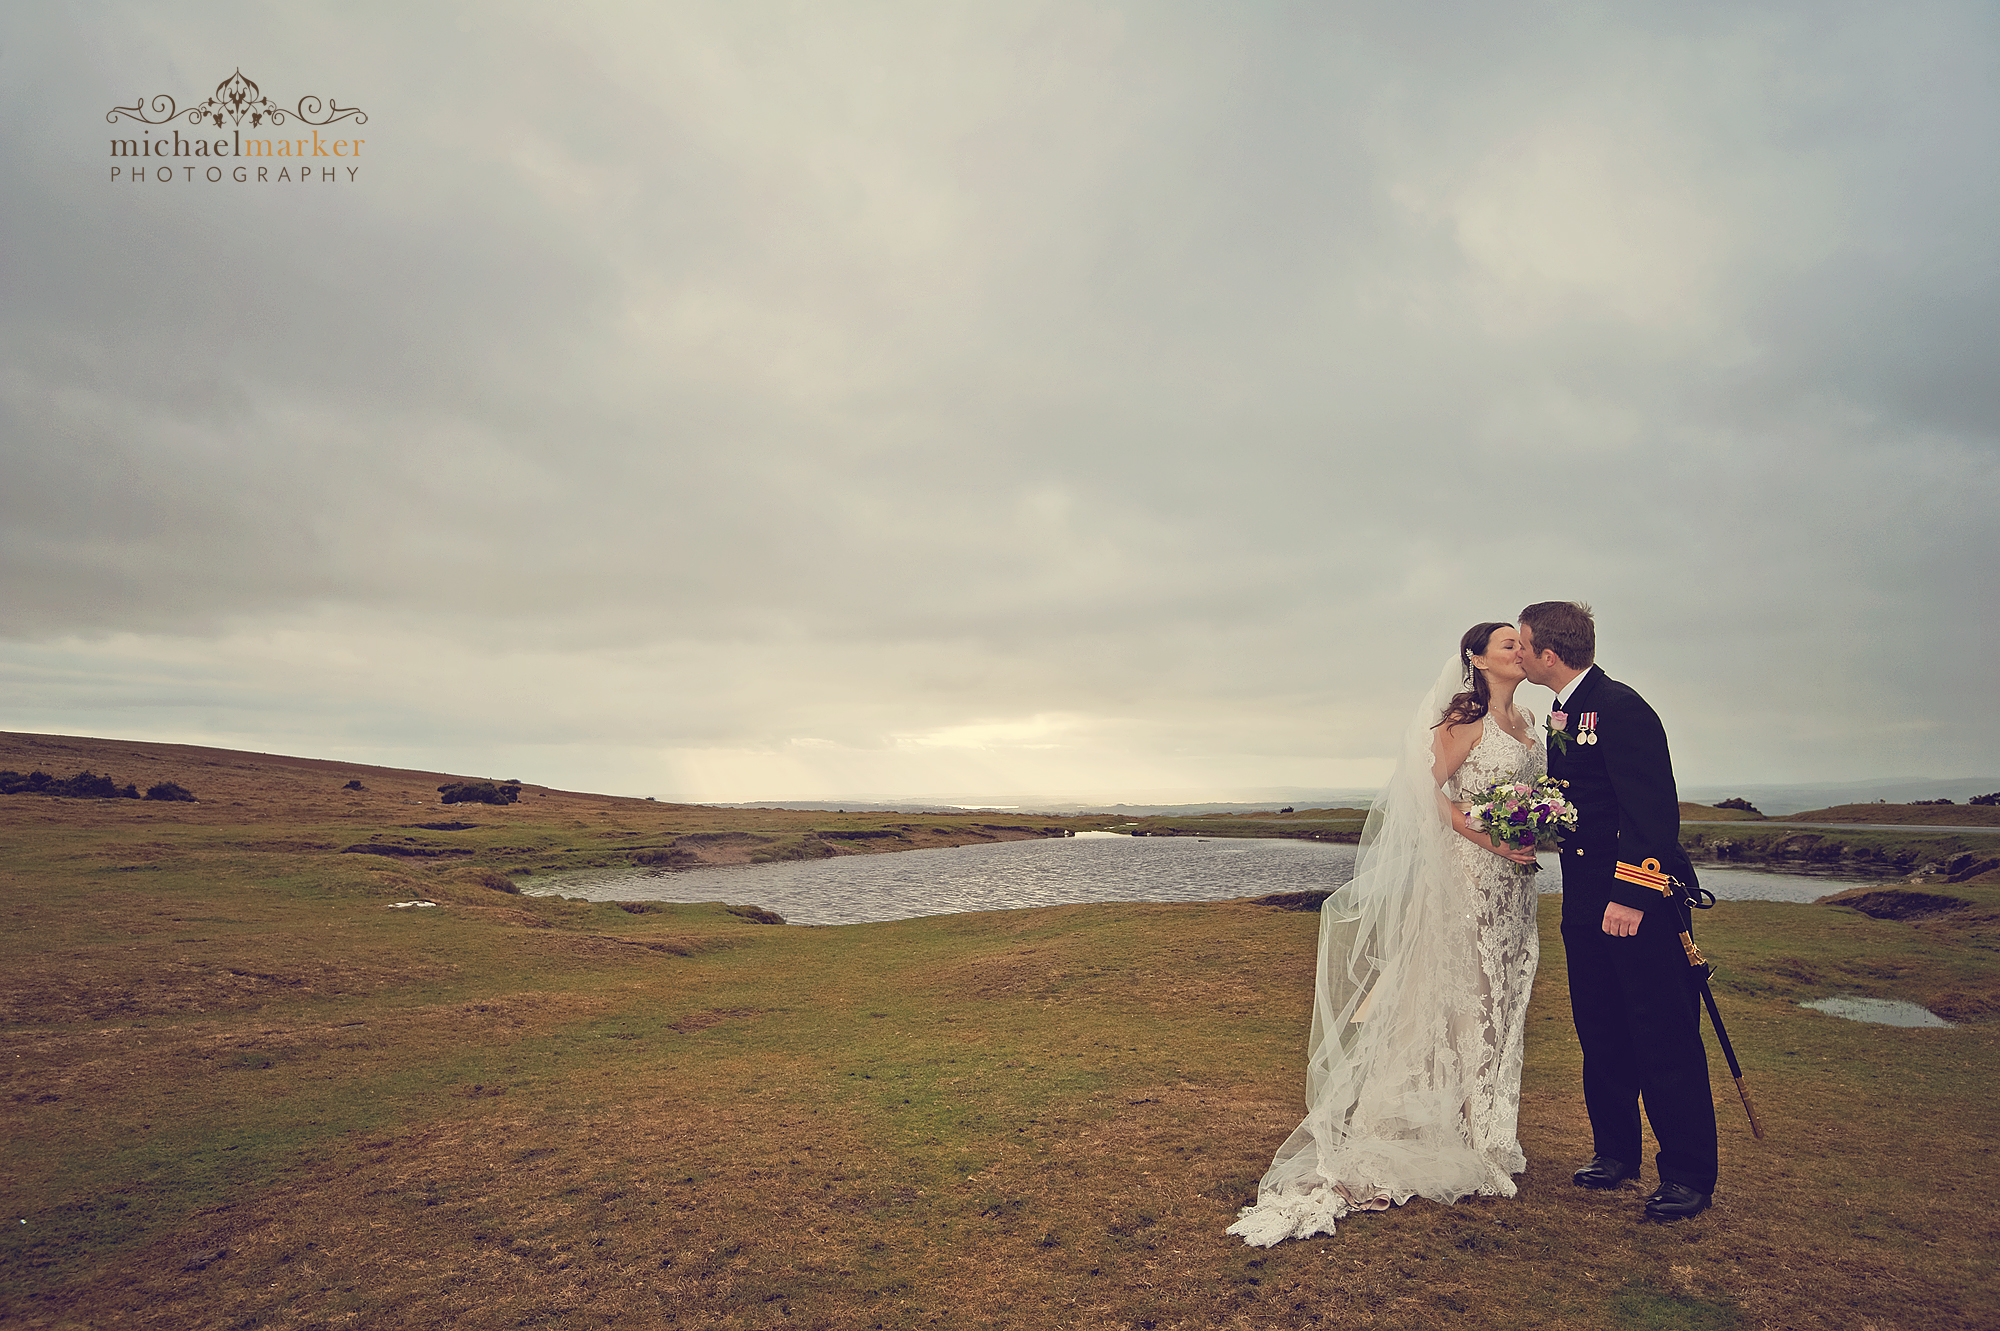 Wedding day couple kissing on Dartmoor with view of Plymouth behind